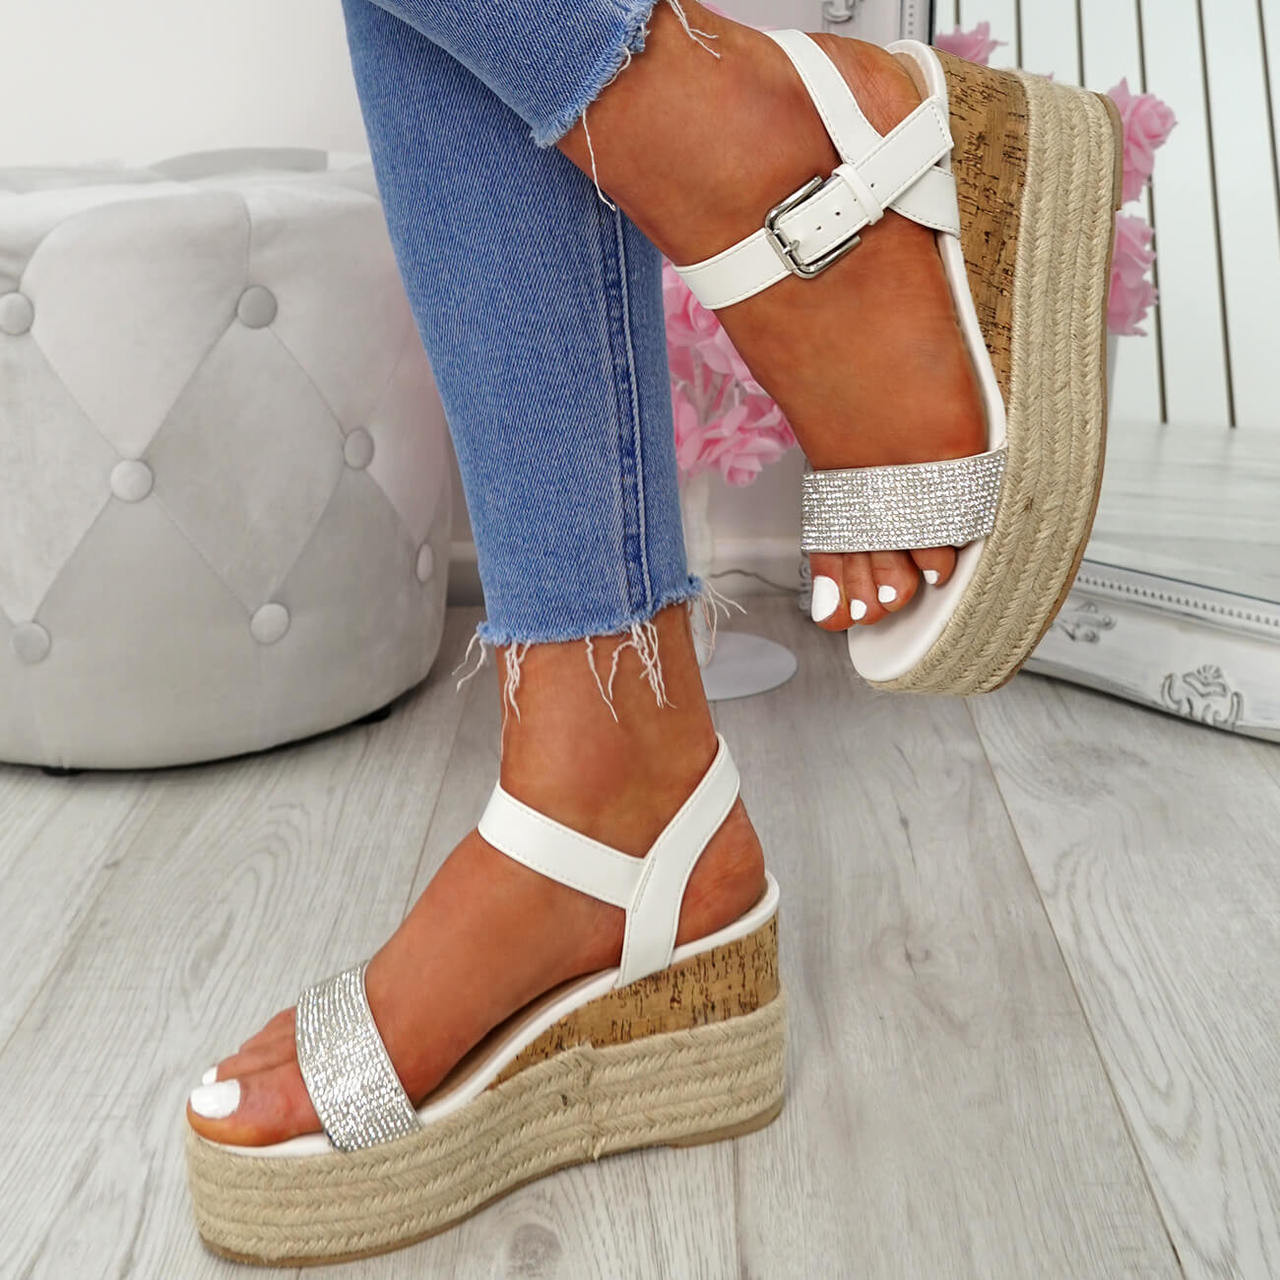 Ladies Mid High Wedge Heel Summer Diamante Ankle Strap Sandals Women Shoes Size